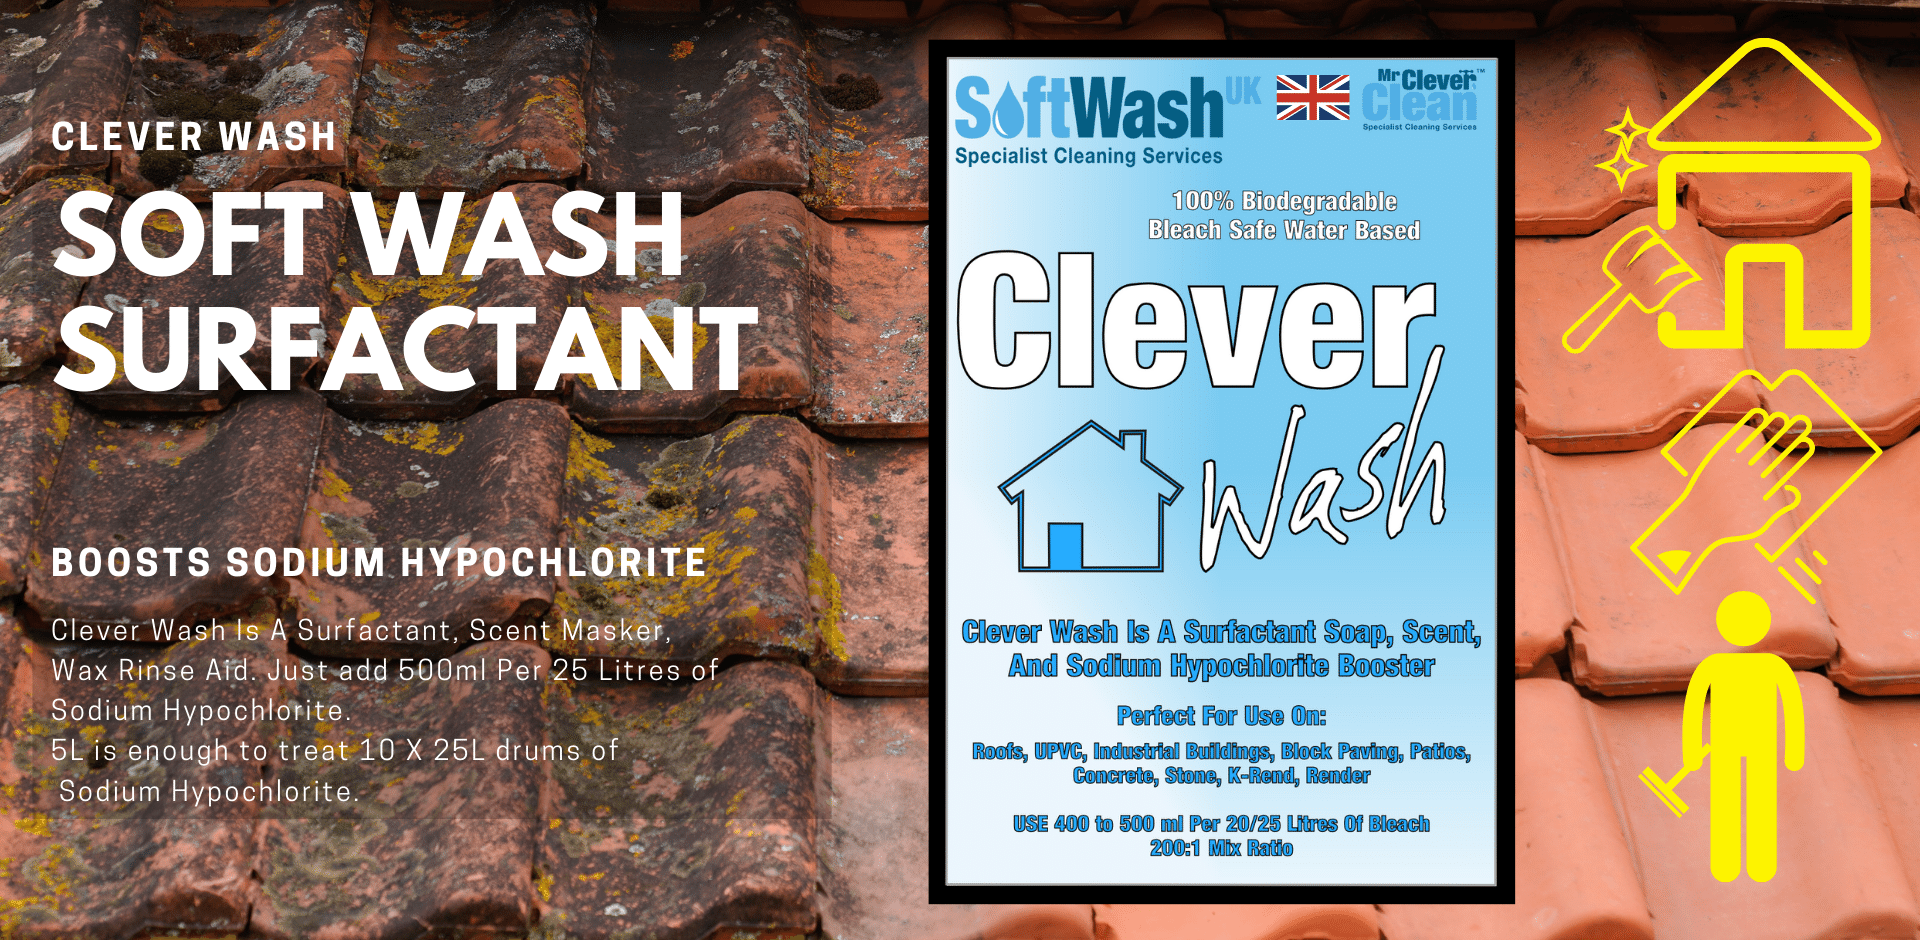 Cleverwash soft wash Chemicals